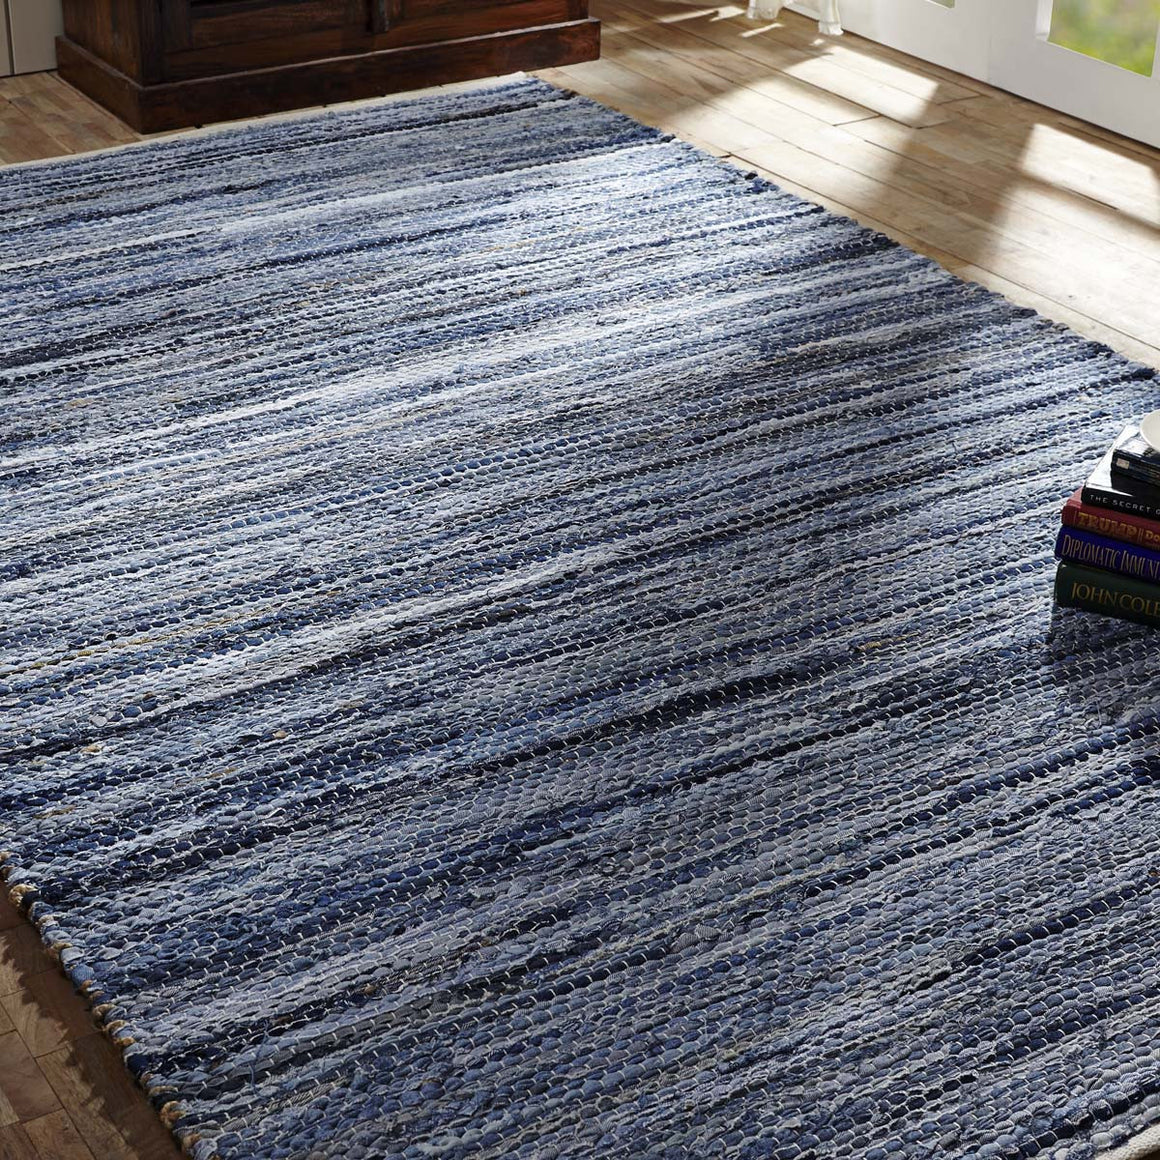 Denim & Hemp Chindi/Rag Rectangle Rug